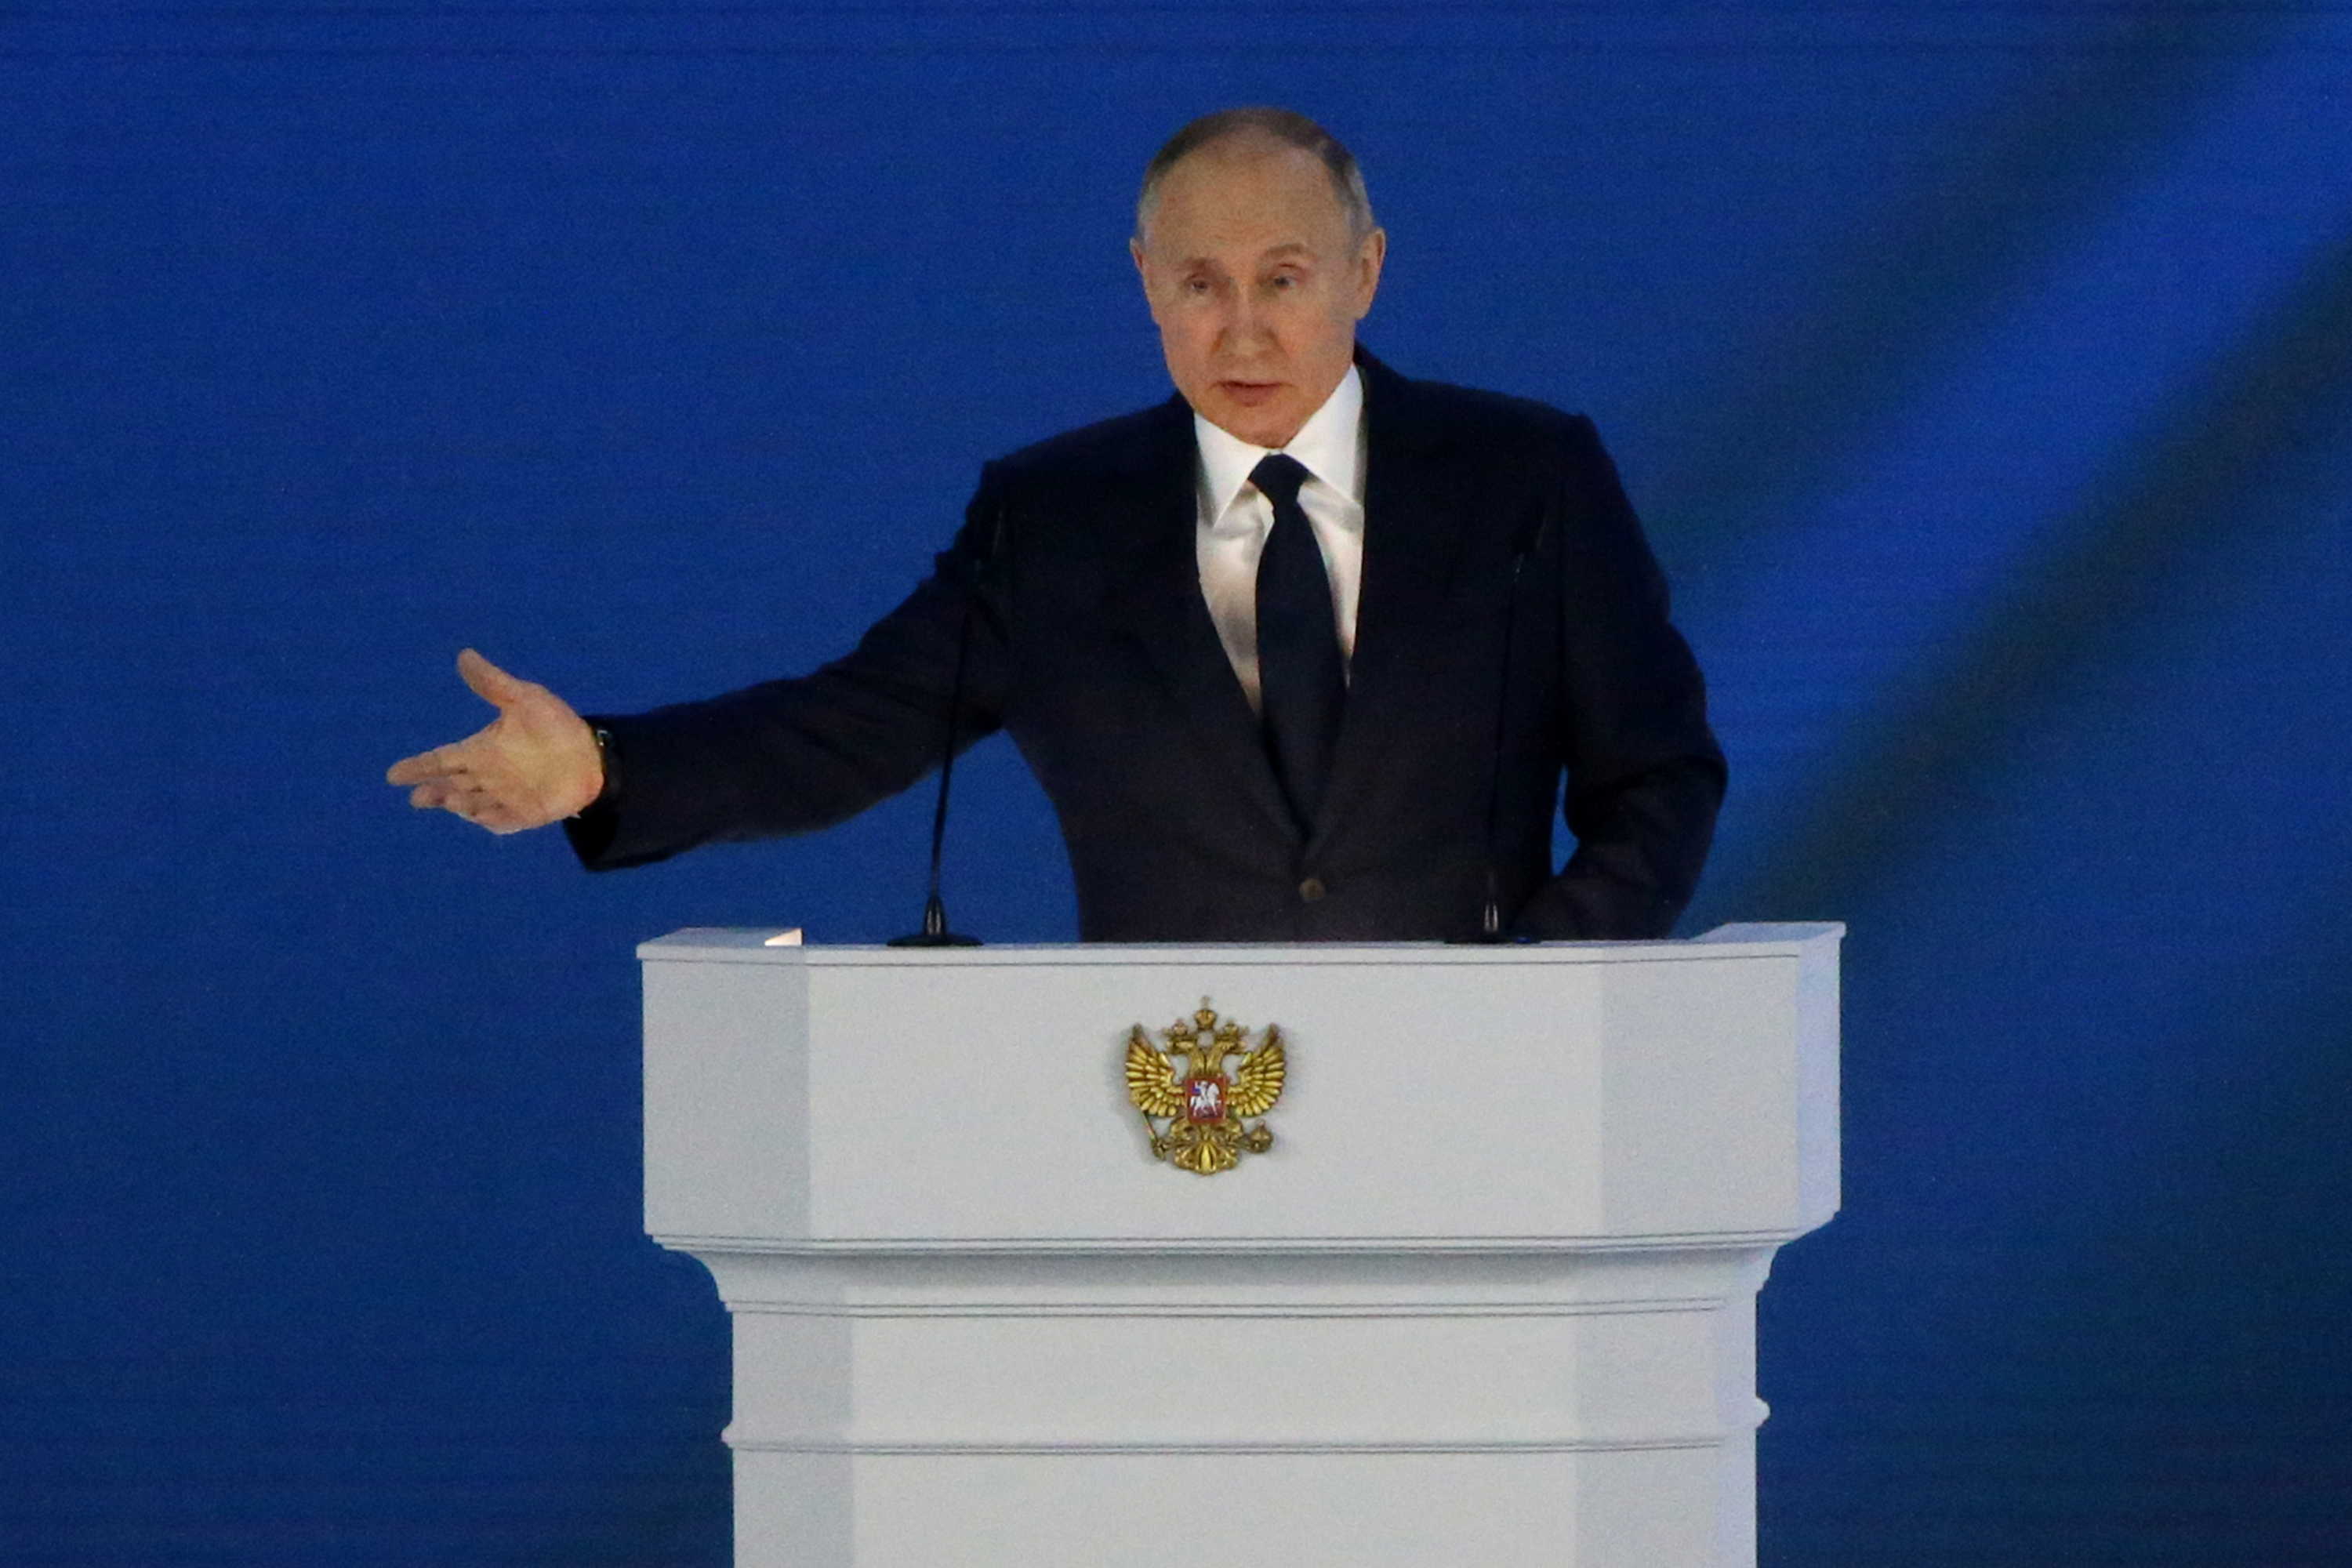 Putin Criticizes Foreign Nations' 'Politically Motivated' Sanctions